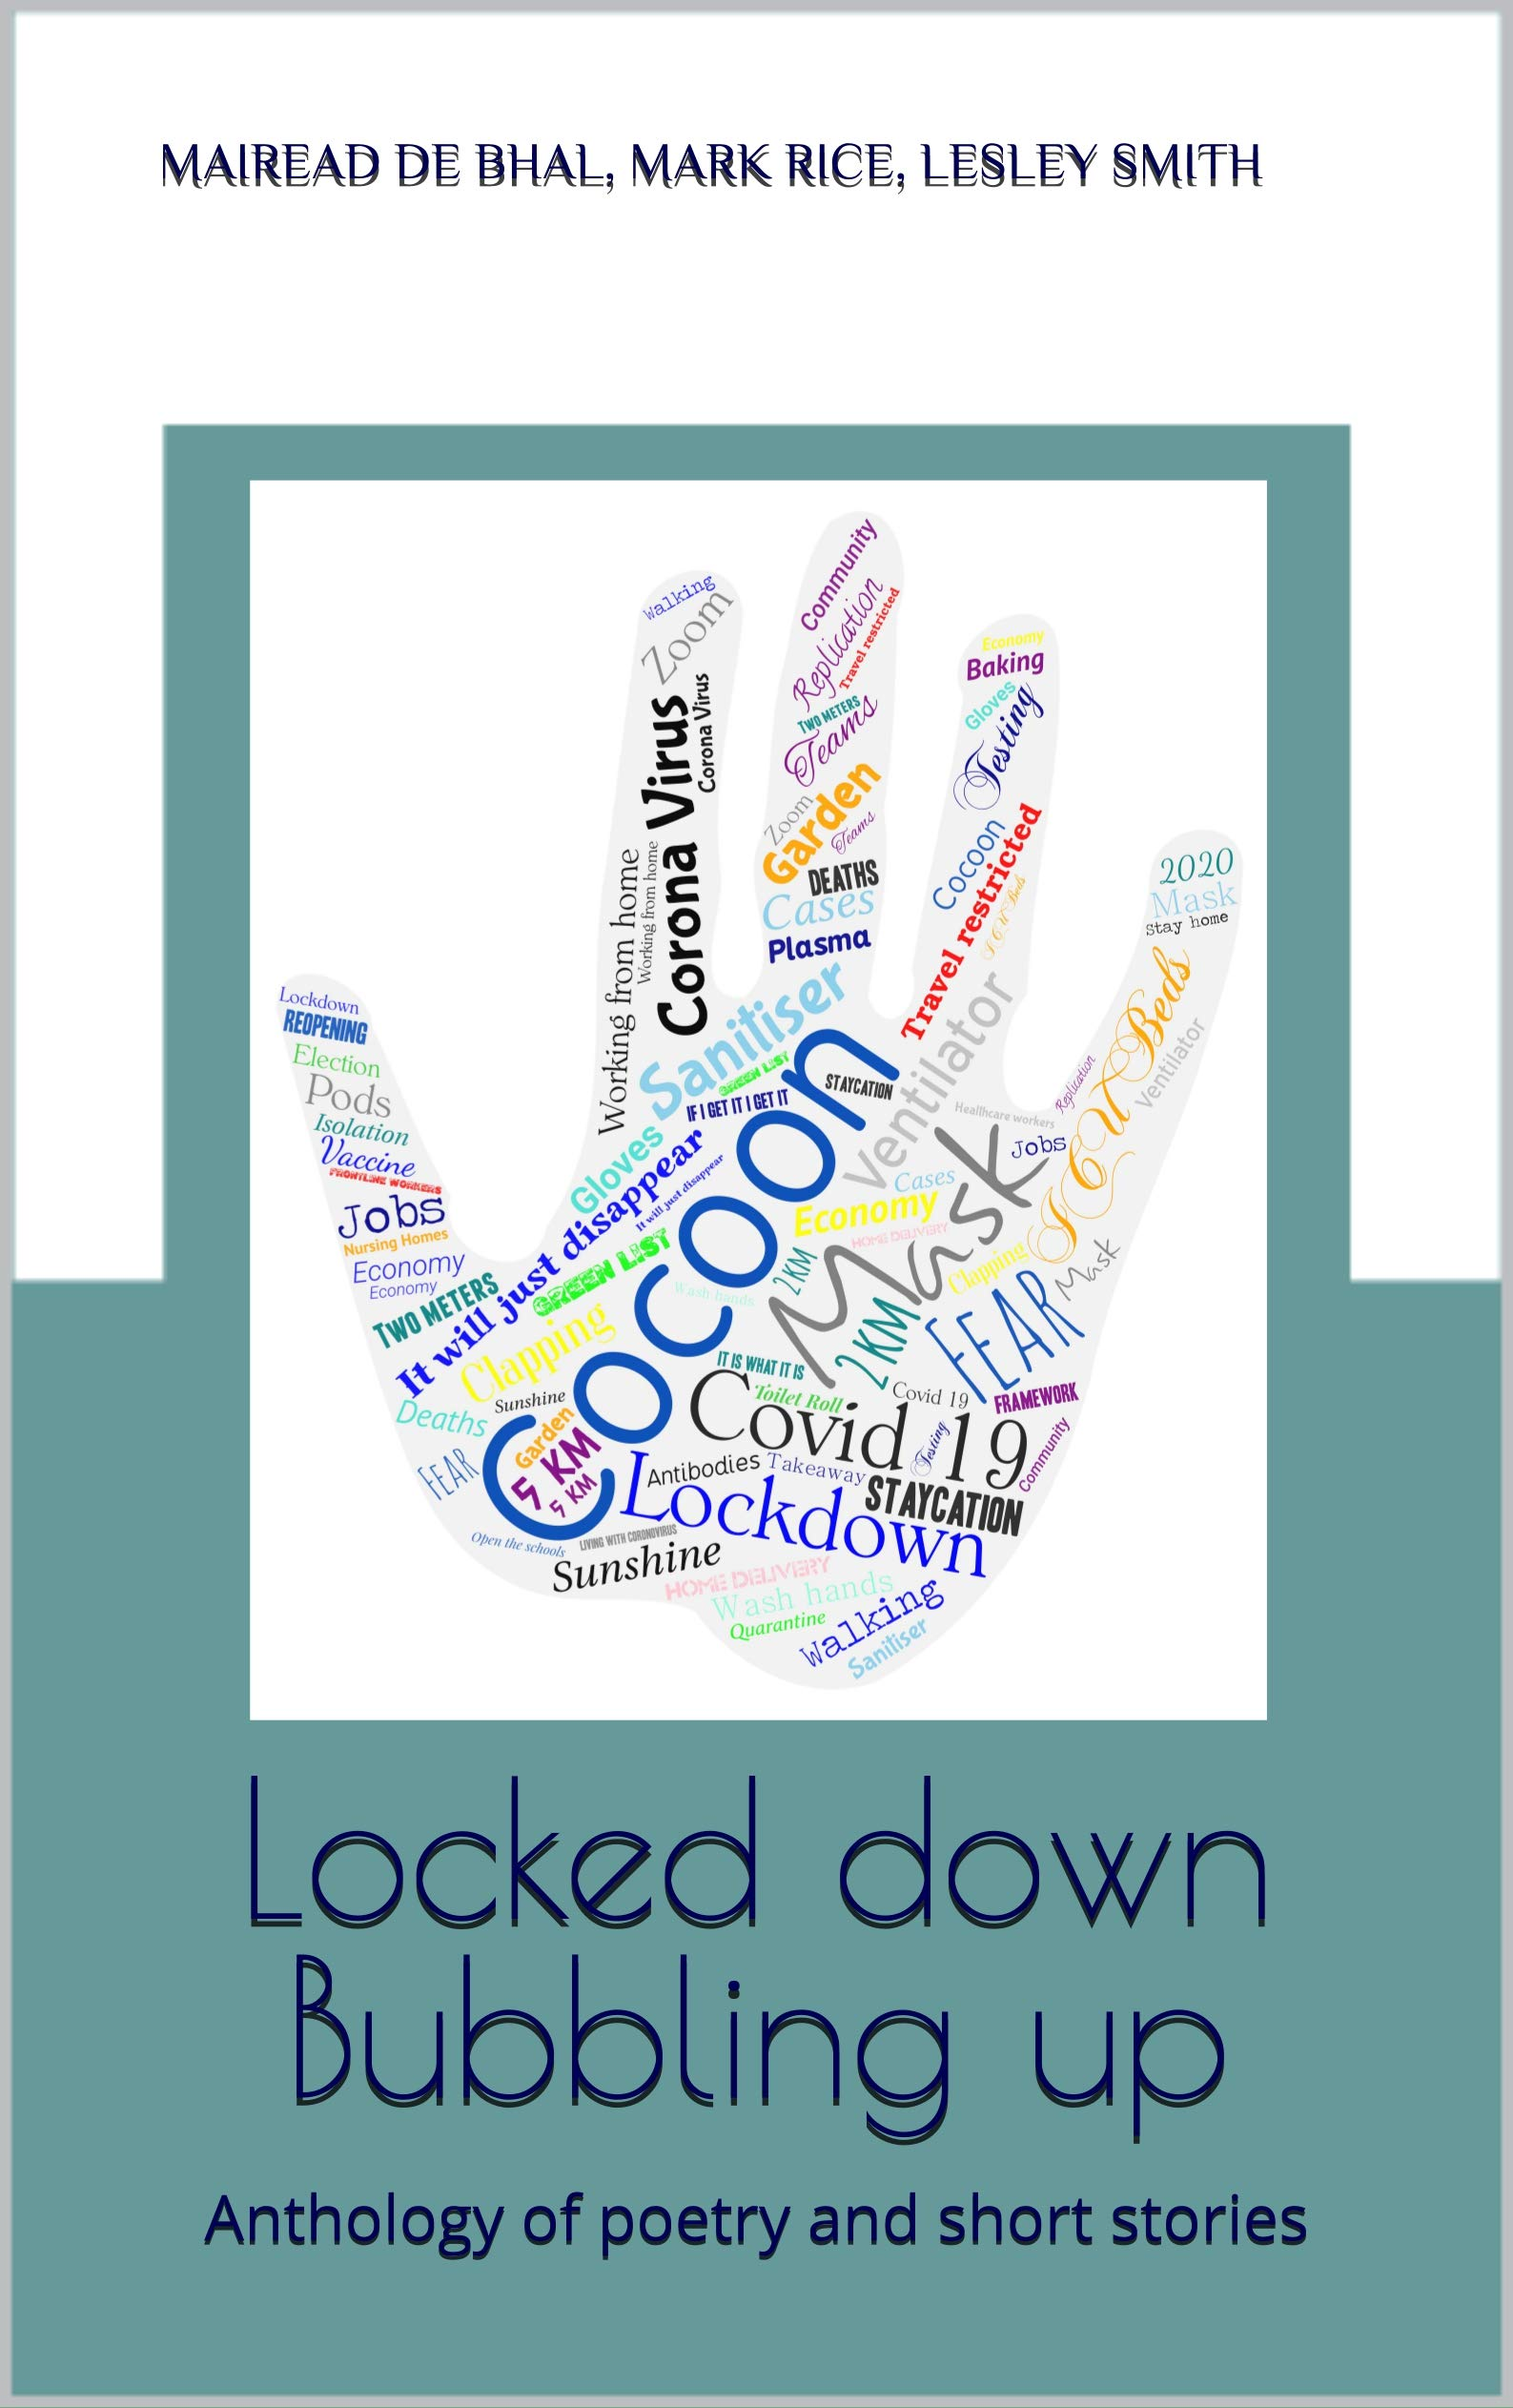 Locked down Bubbling up: Anthology of poetry and short stories